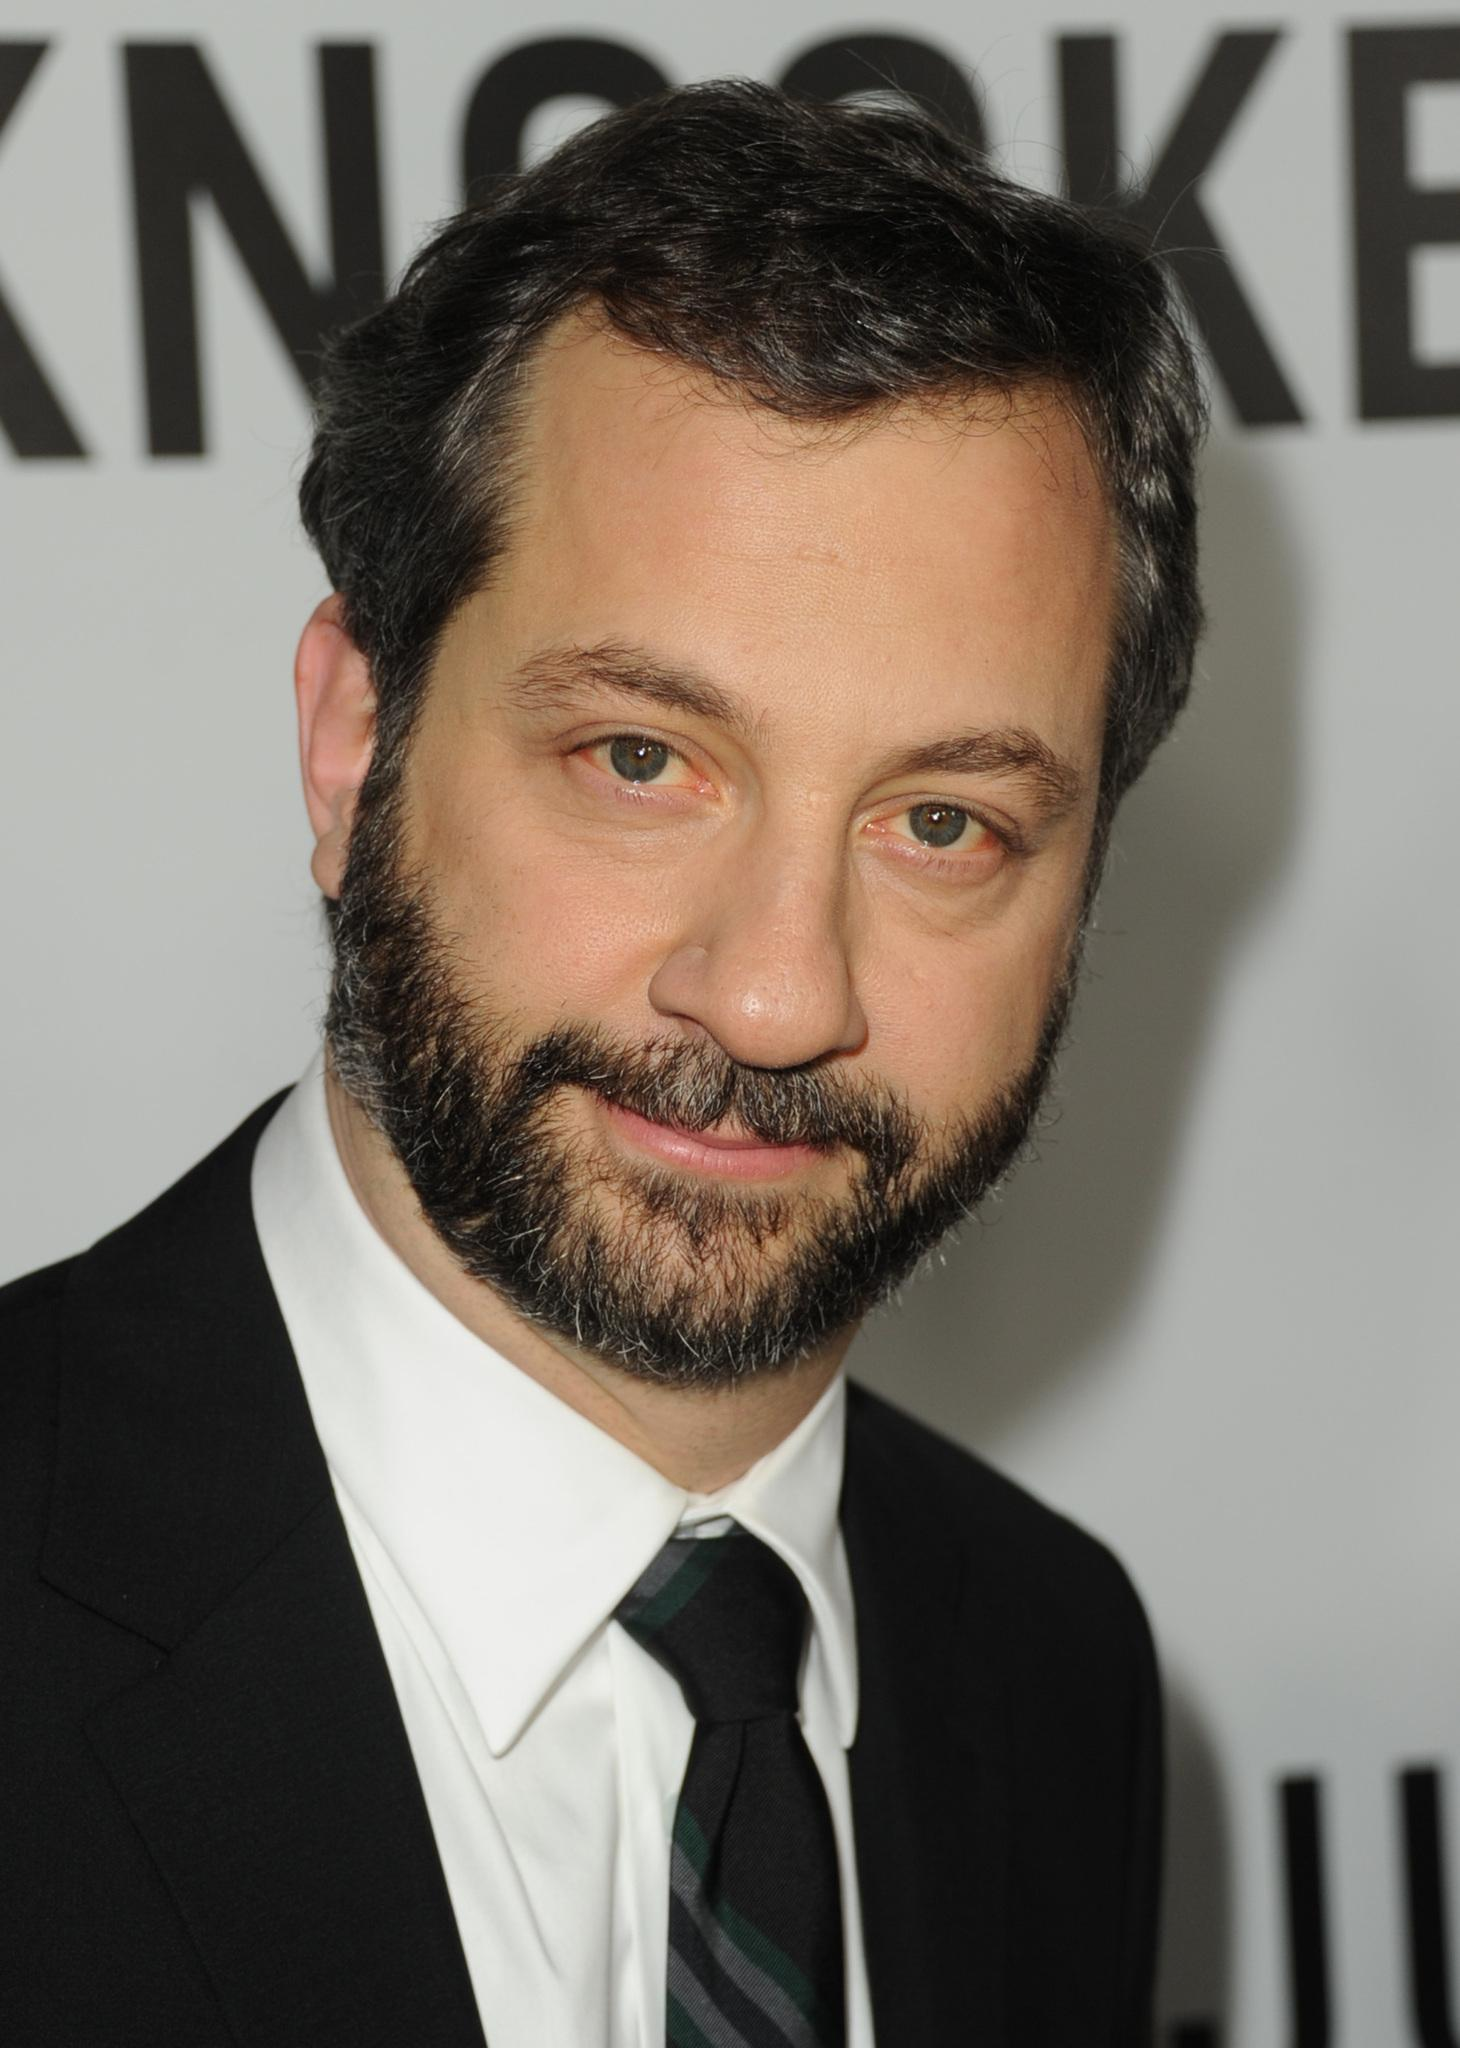 Judd Apatow click to close